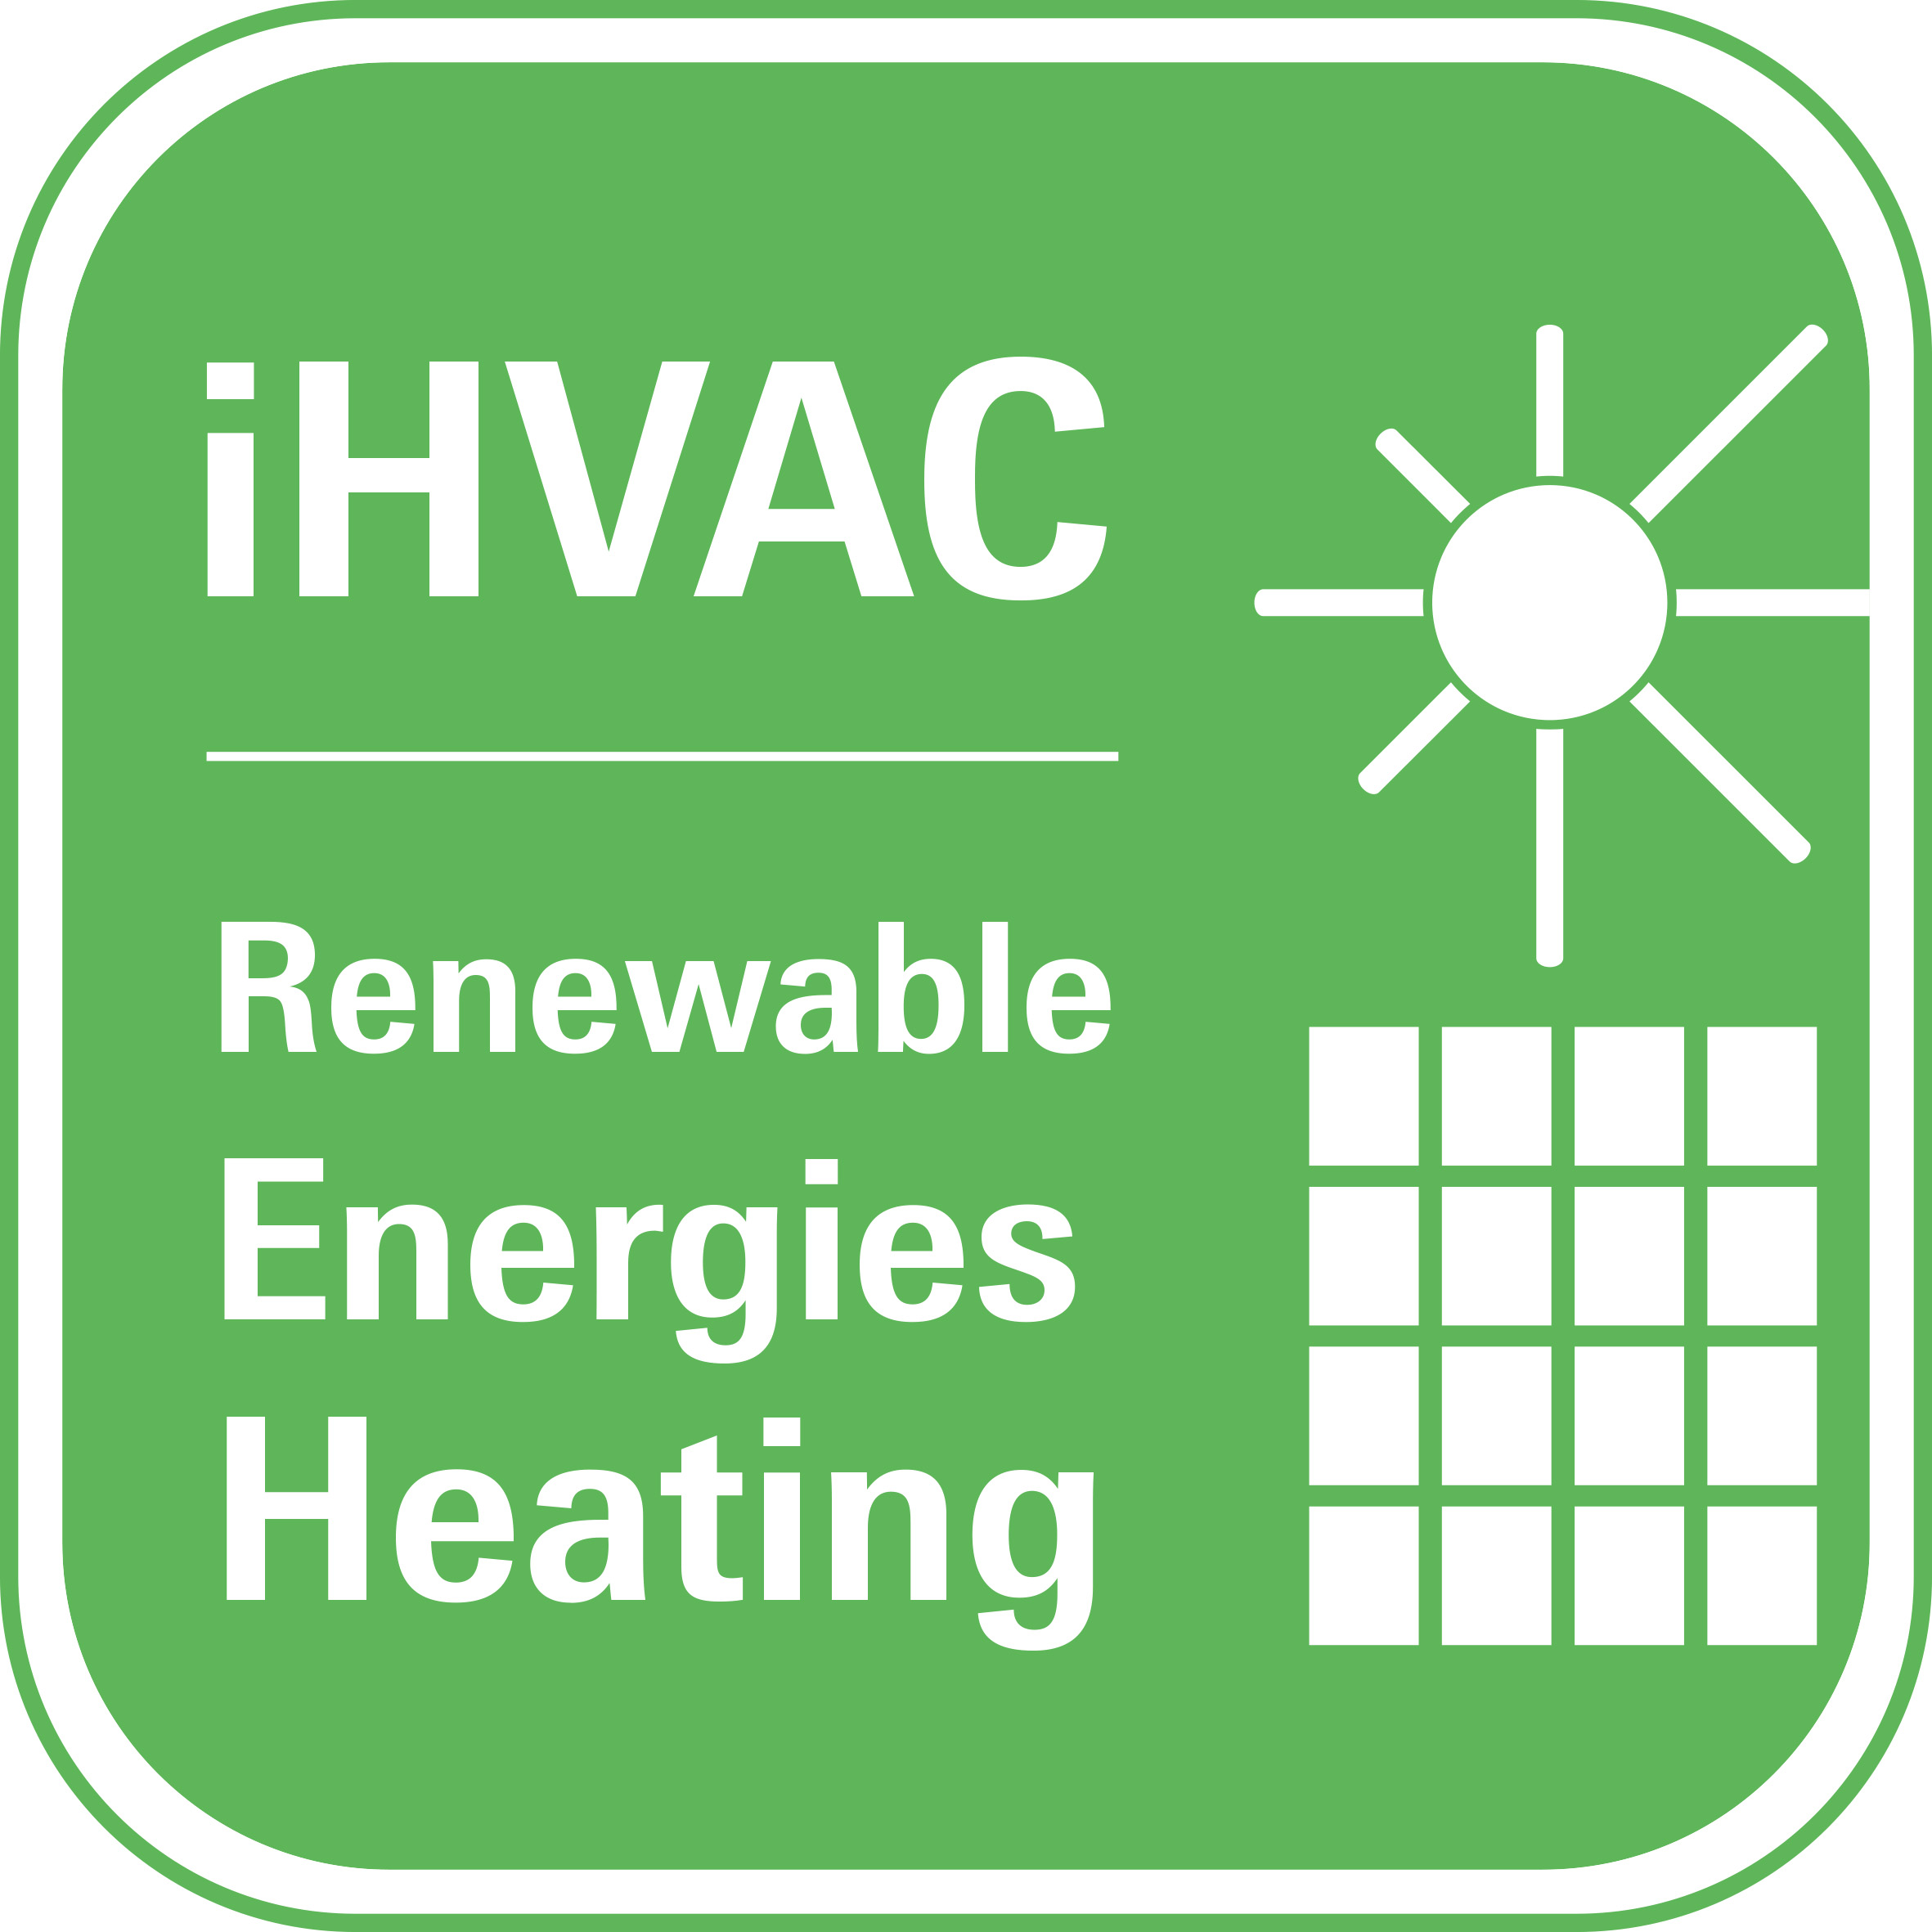 ihvac-renewable energies(MF-font)